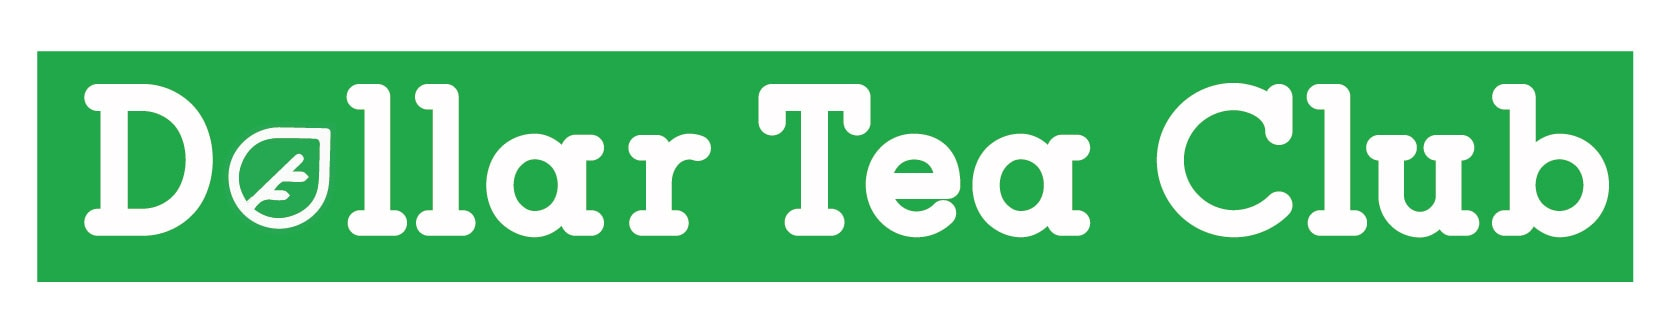 Dollar Tea logo